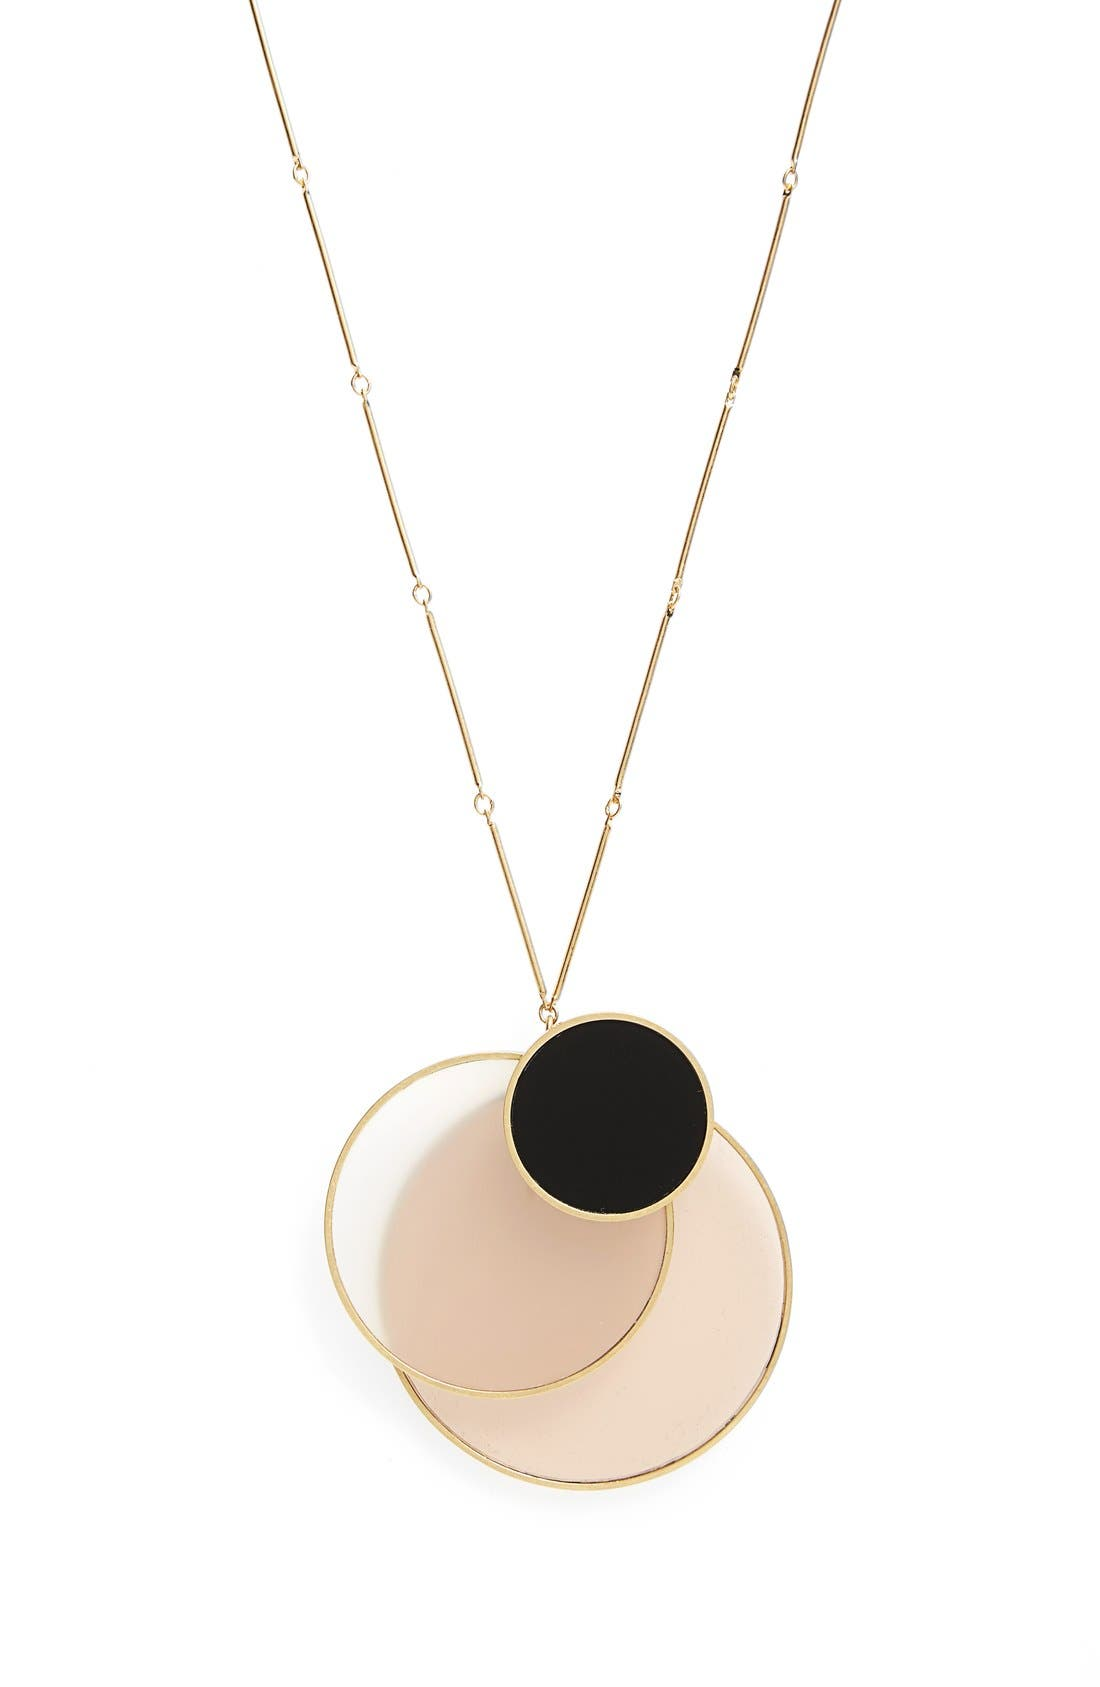 Main Image - Tory Burch Circle Cluster Pendant Necklace